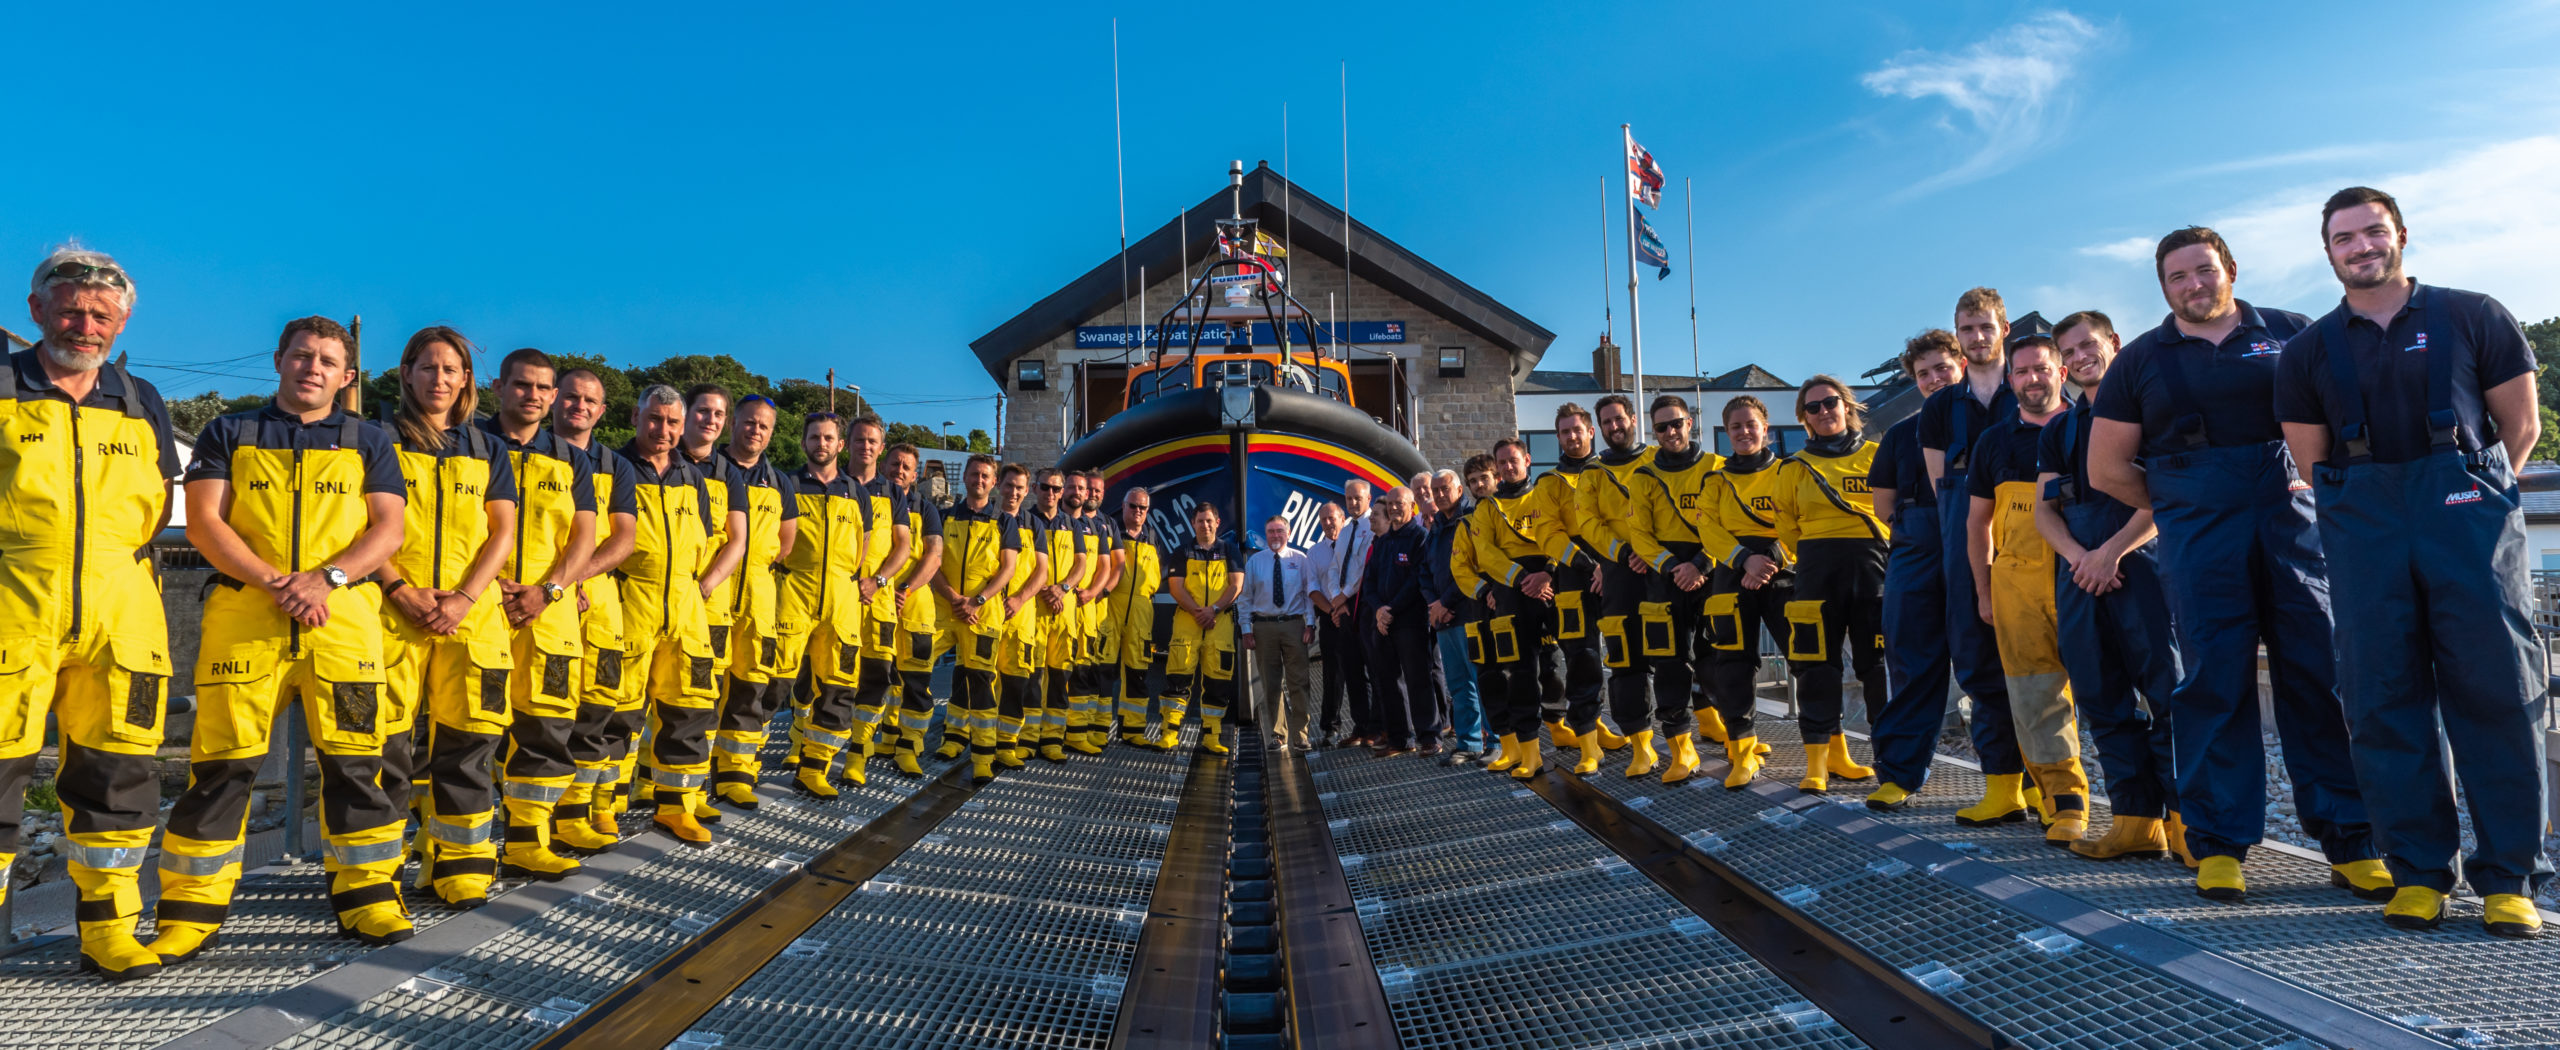 Swanage Lifeboat crew standing outside the Lifeboat house